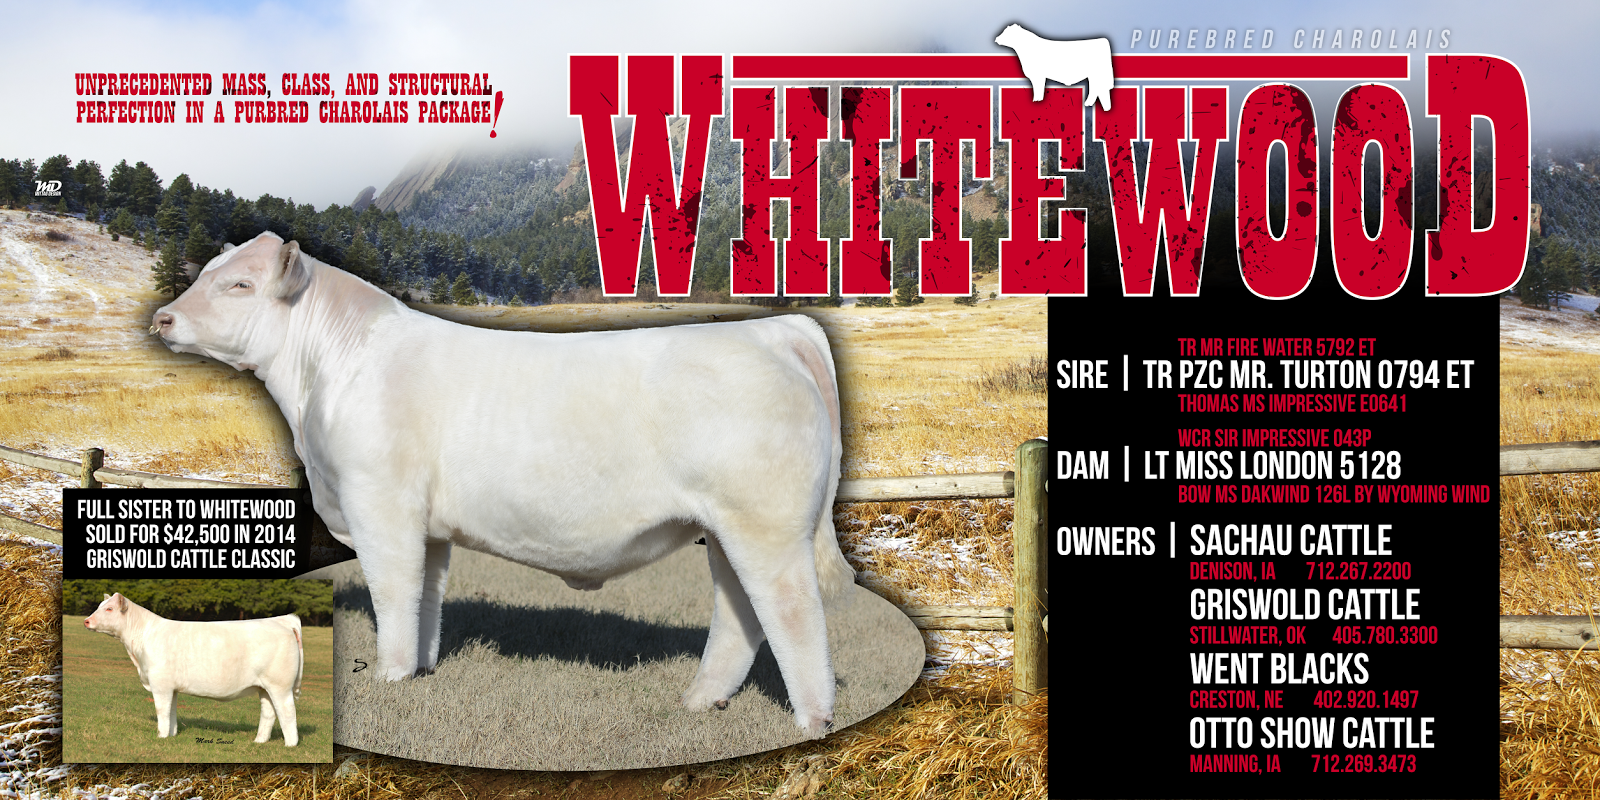 Mittag Blog Thanks To Otto Show Cattle And Brad Otto Ia For Your Denver Banner Order And Continued Business